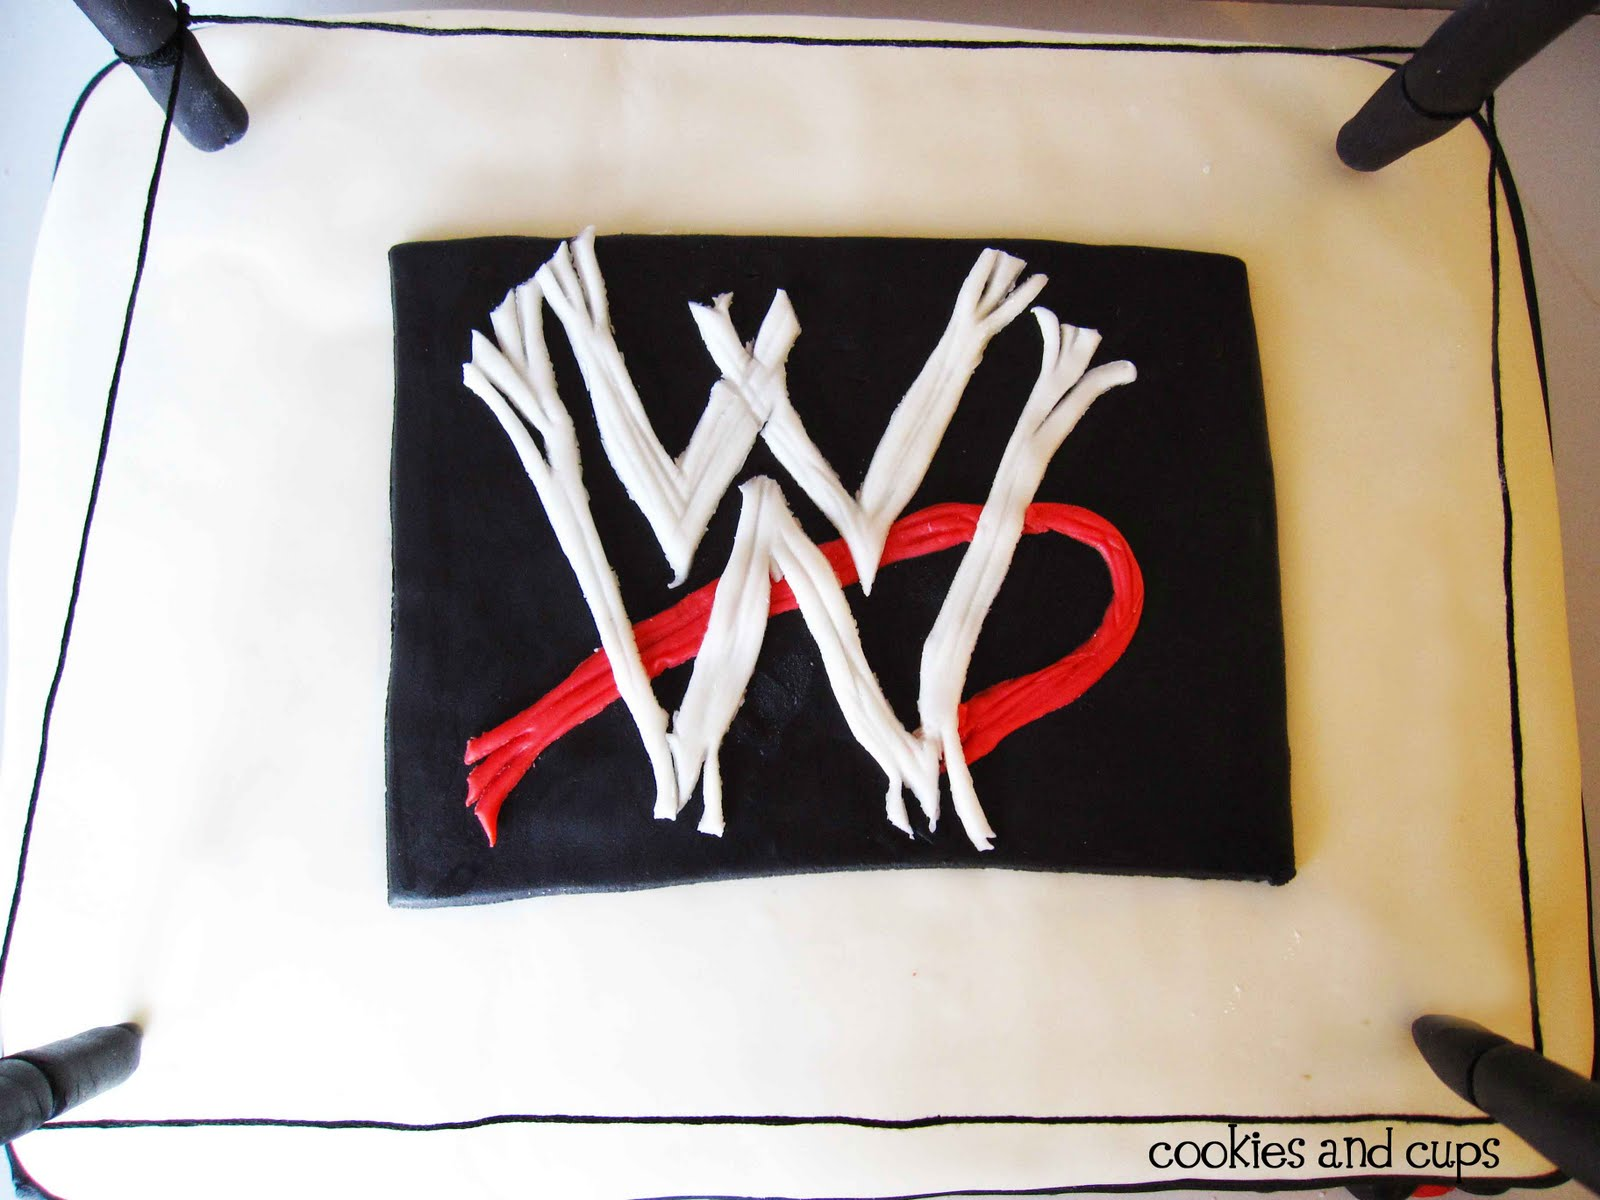 Edible Cake Images Wwe : Wwe Edible Cake Toppers Grosir Baju Surabaya